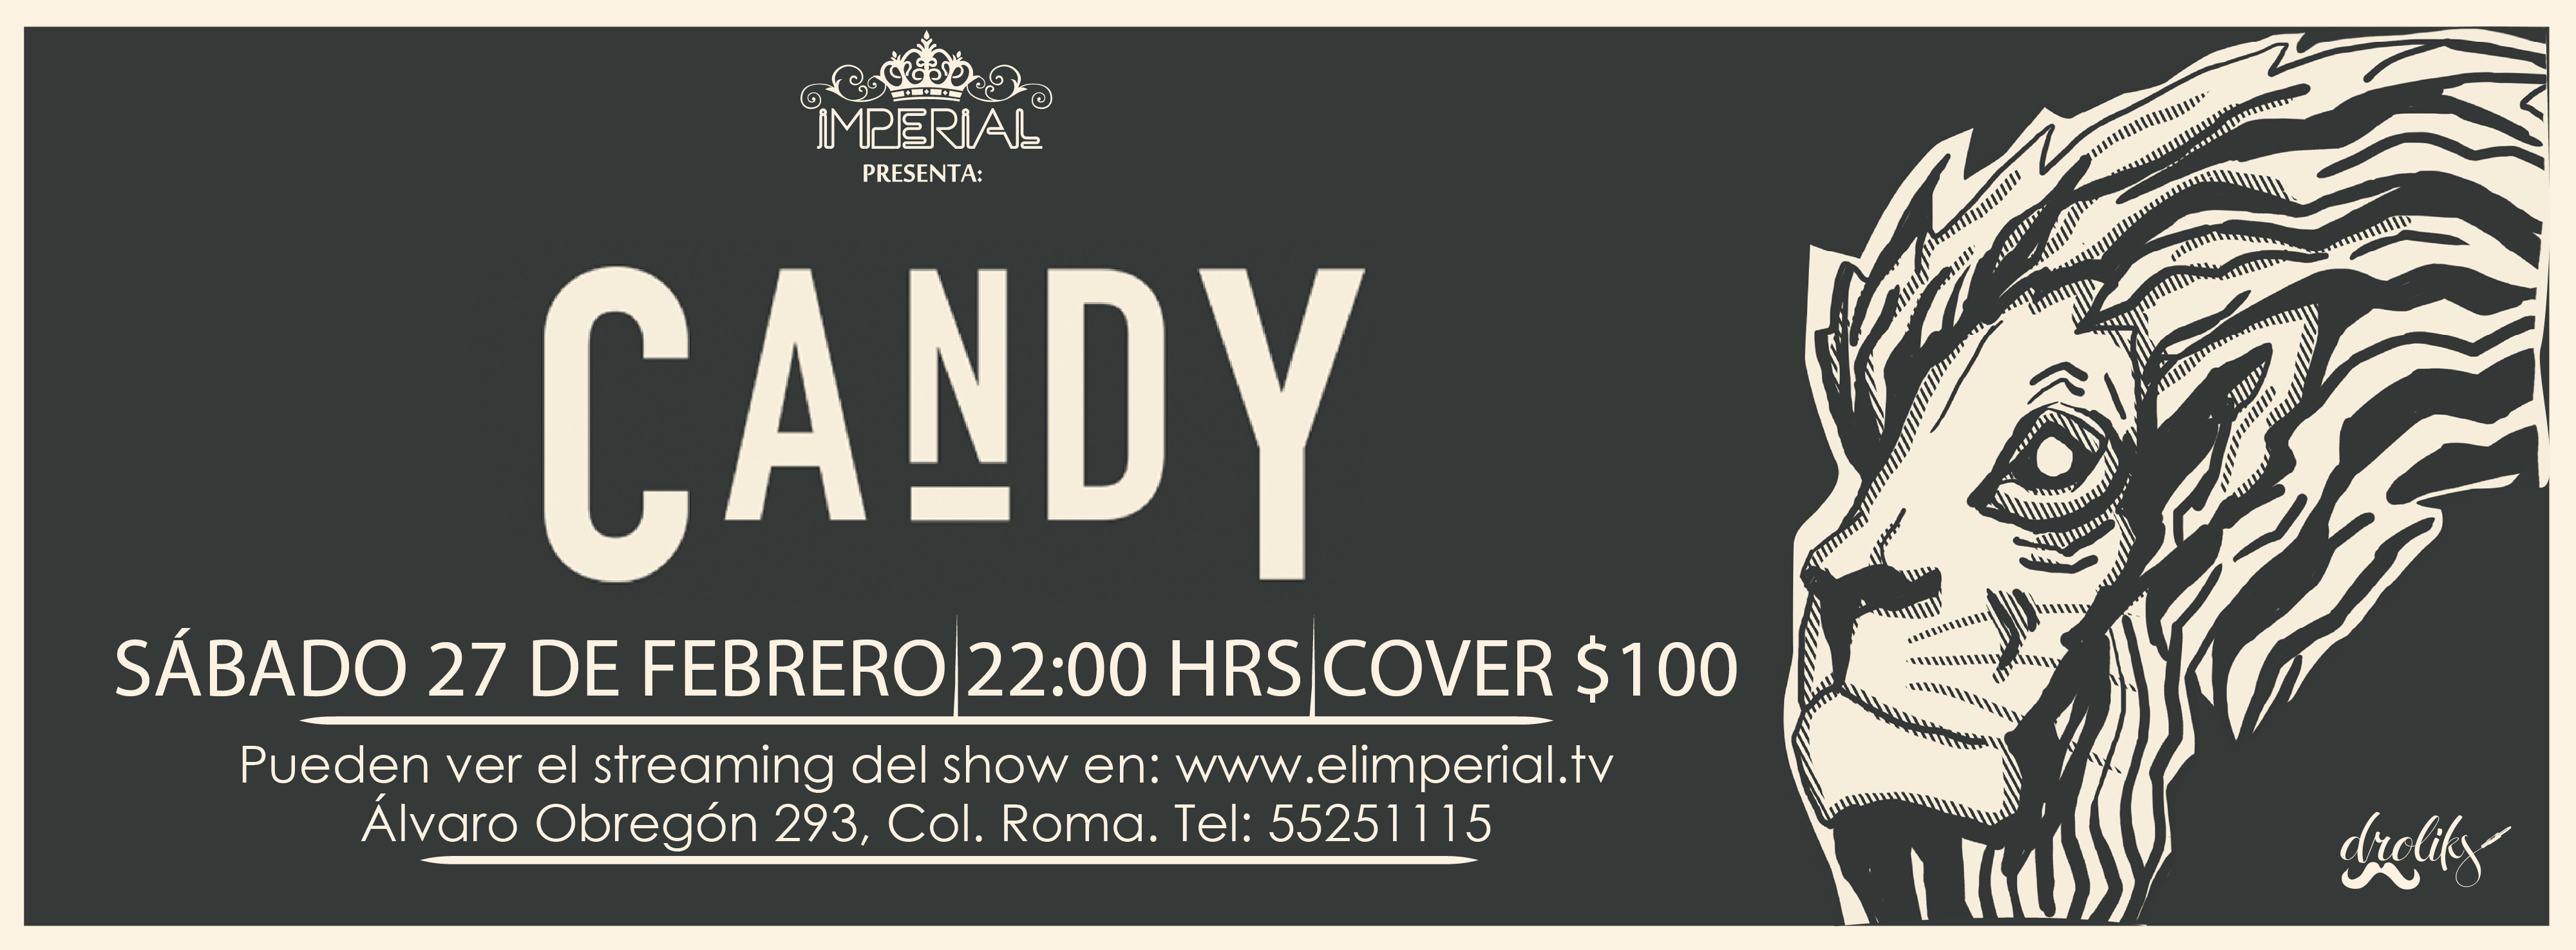 banner candy 2-01